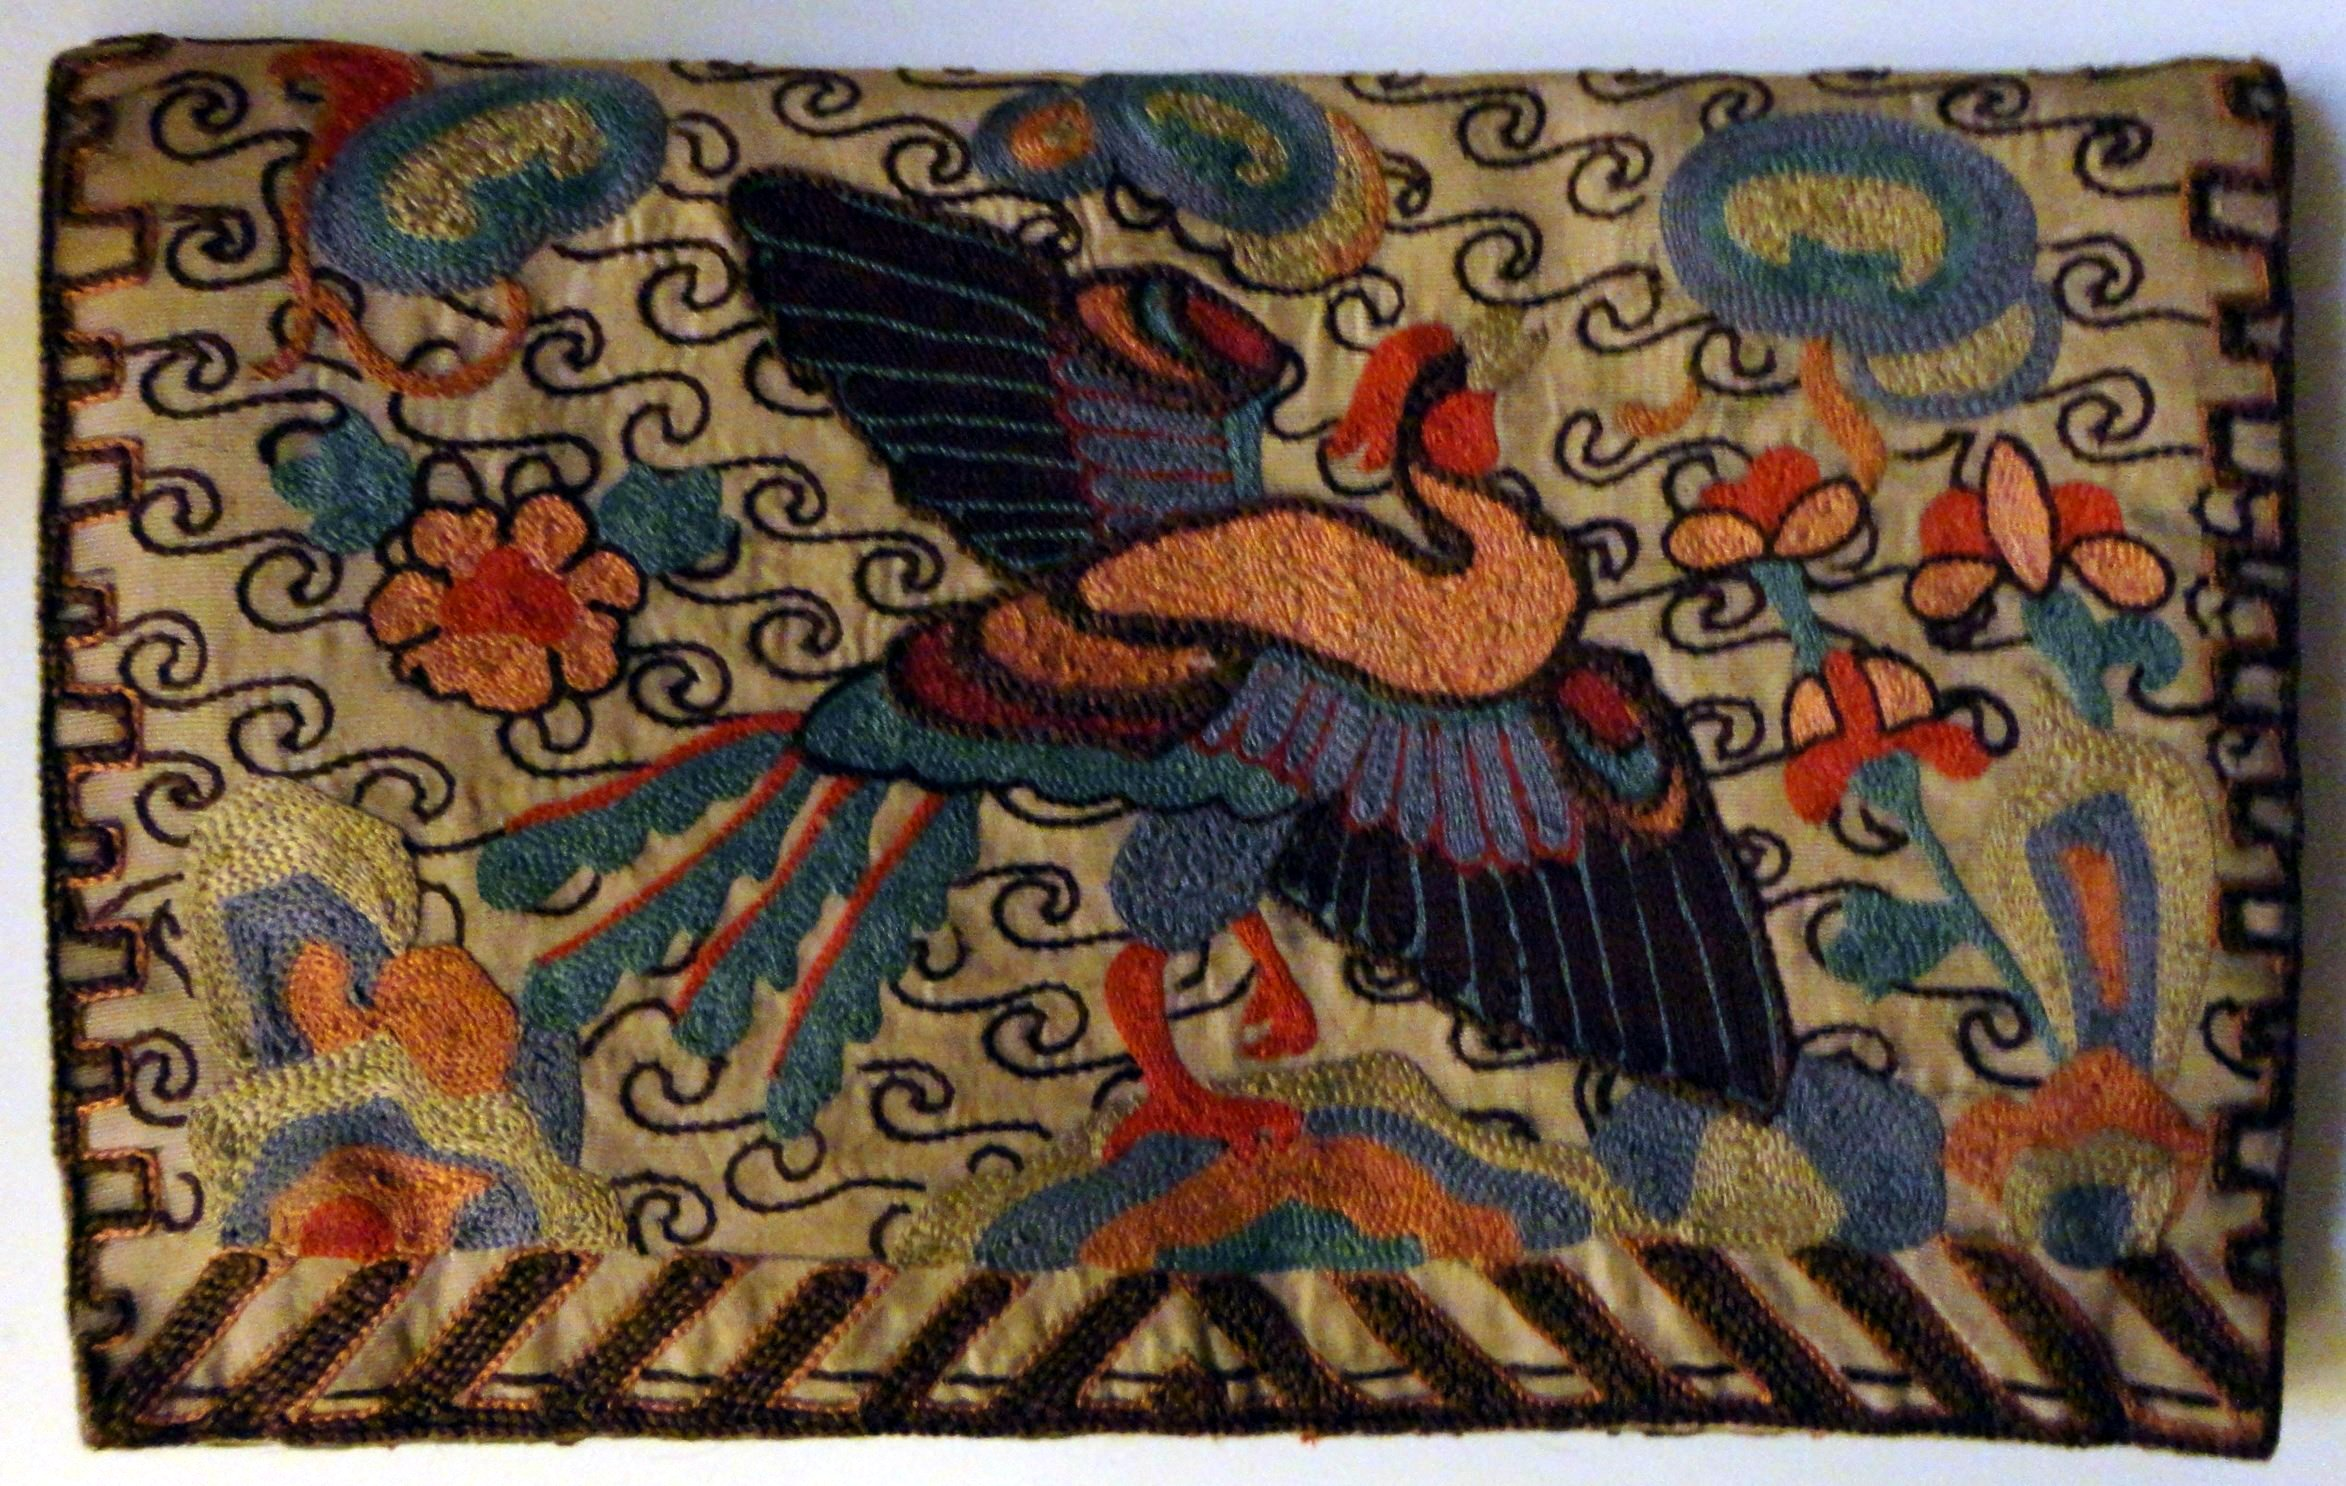 Embroidered Chinese rank badge purse